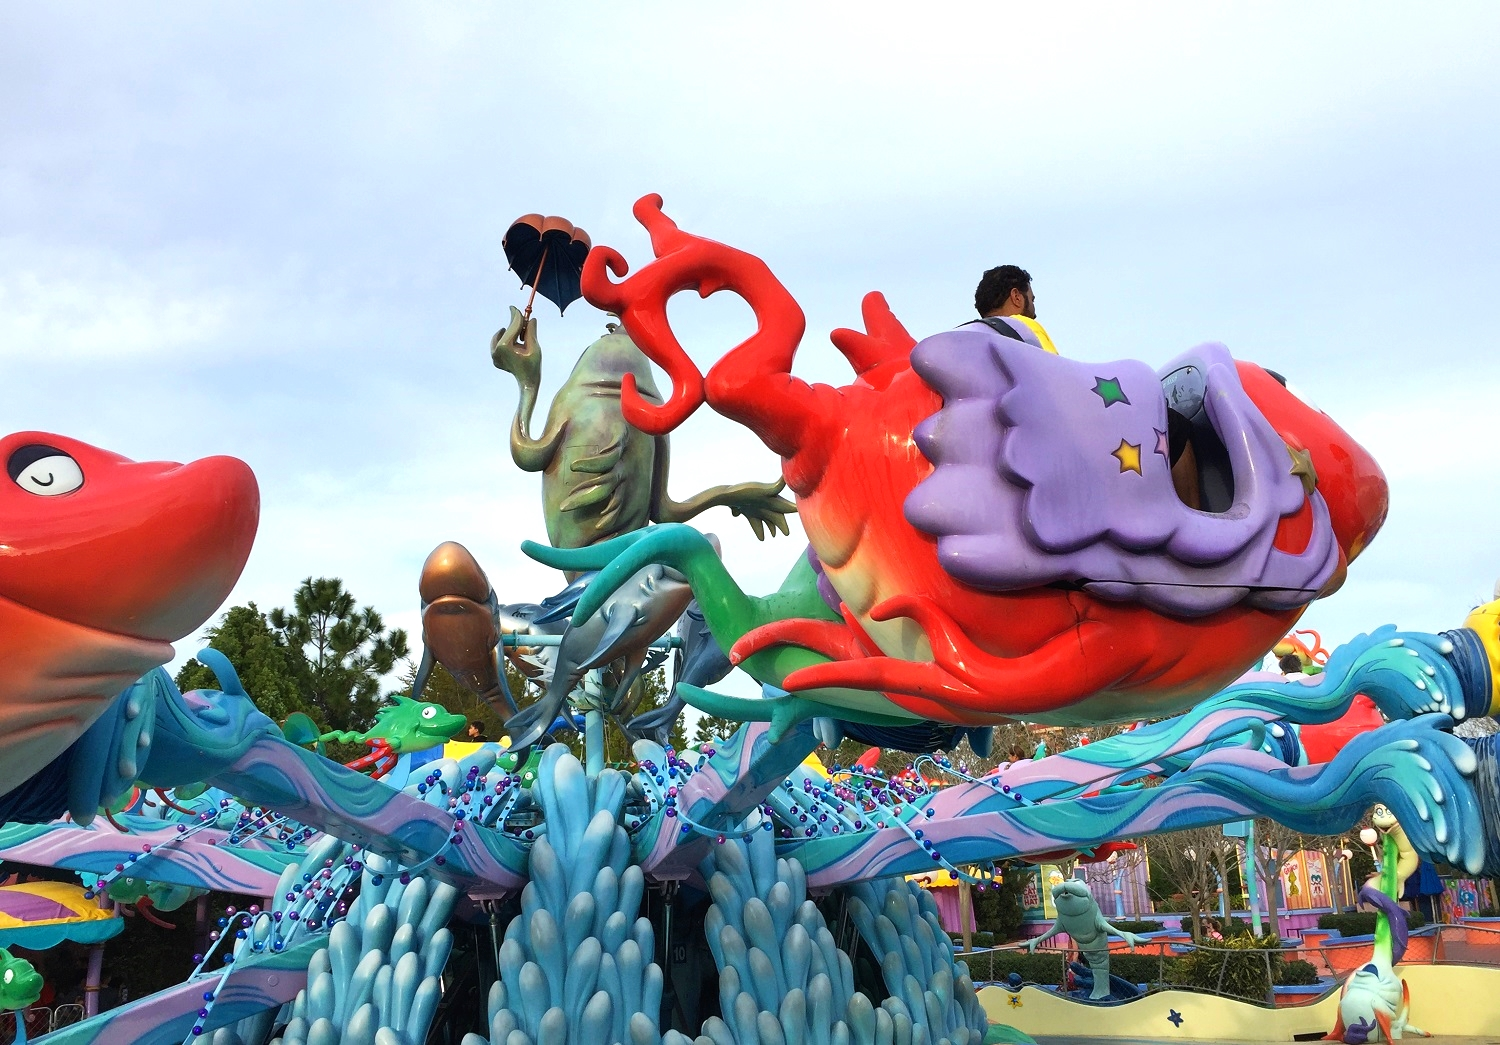 The ride vehicles on One Fish, Two Fish, Red Fish, Blue Fish are shaped like fish.